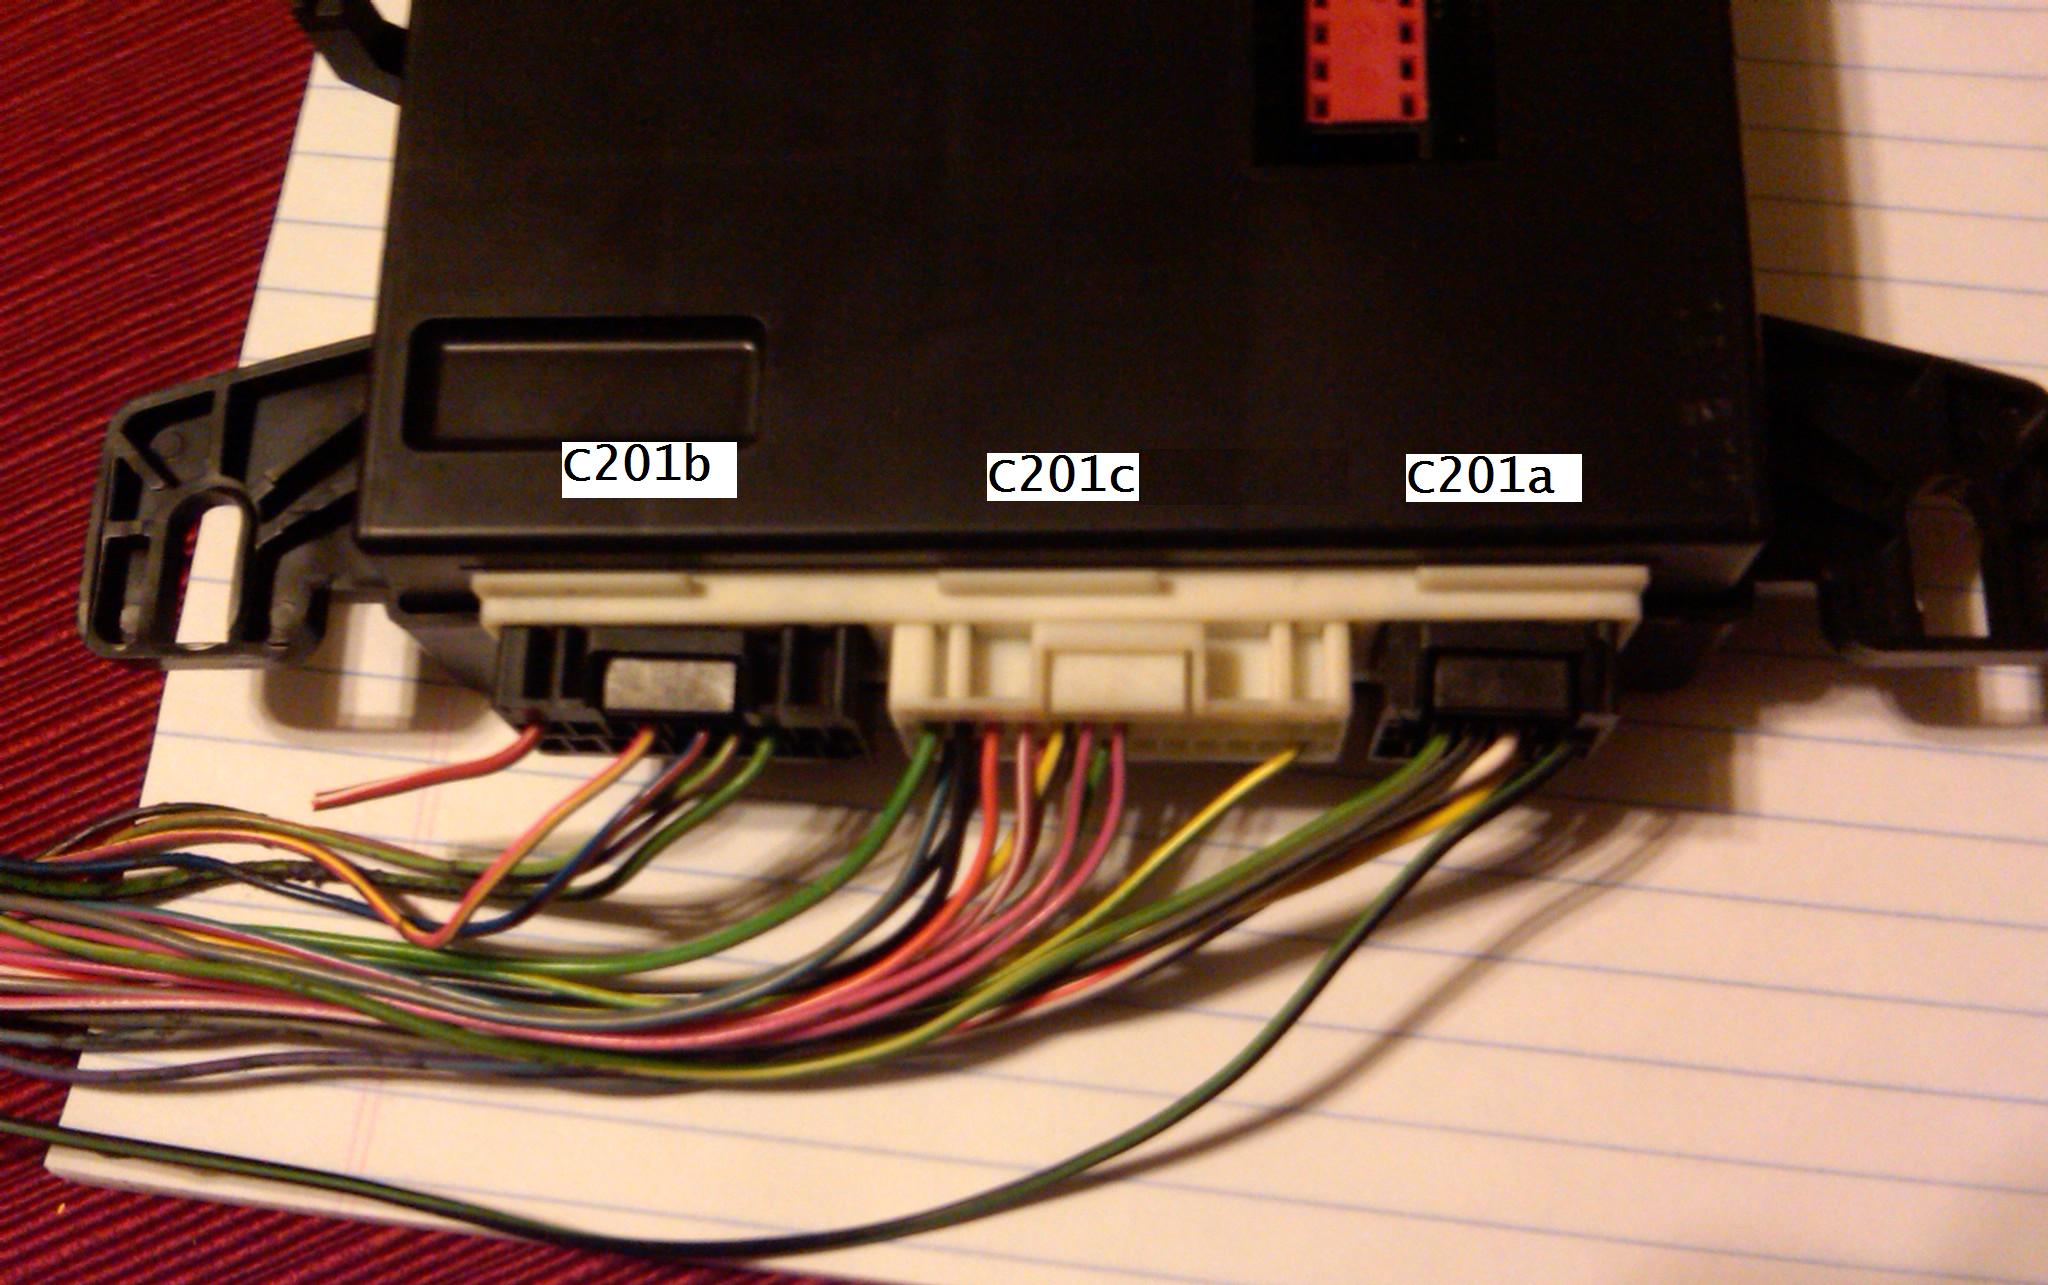 2001 ford focus zx3 radio wiring diagram fishbone nursing and